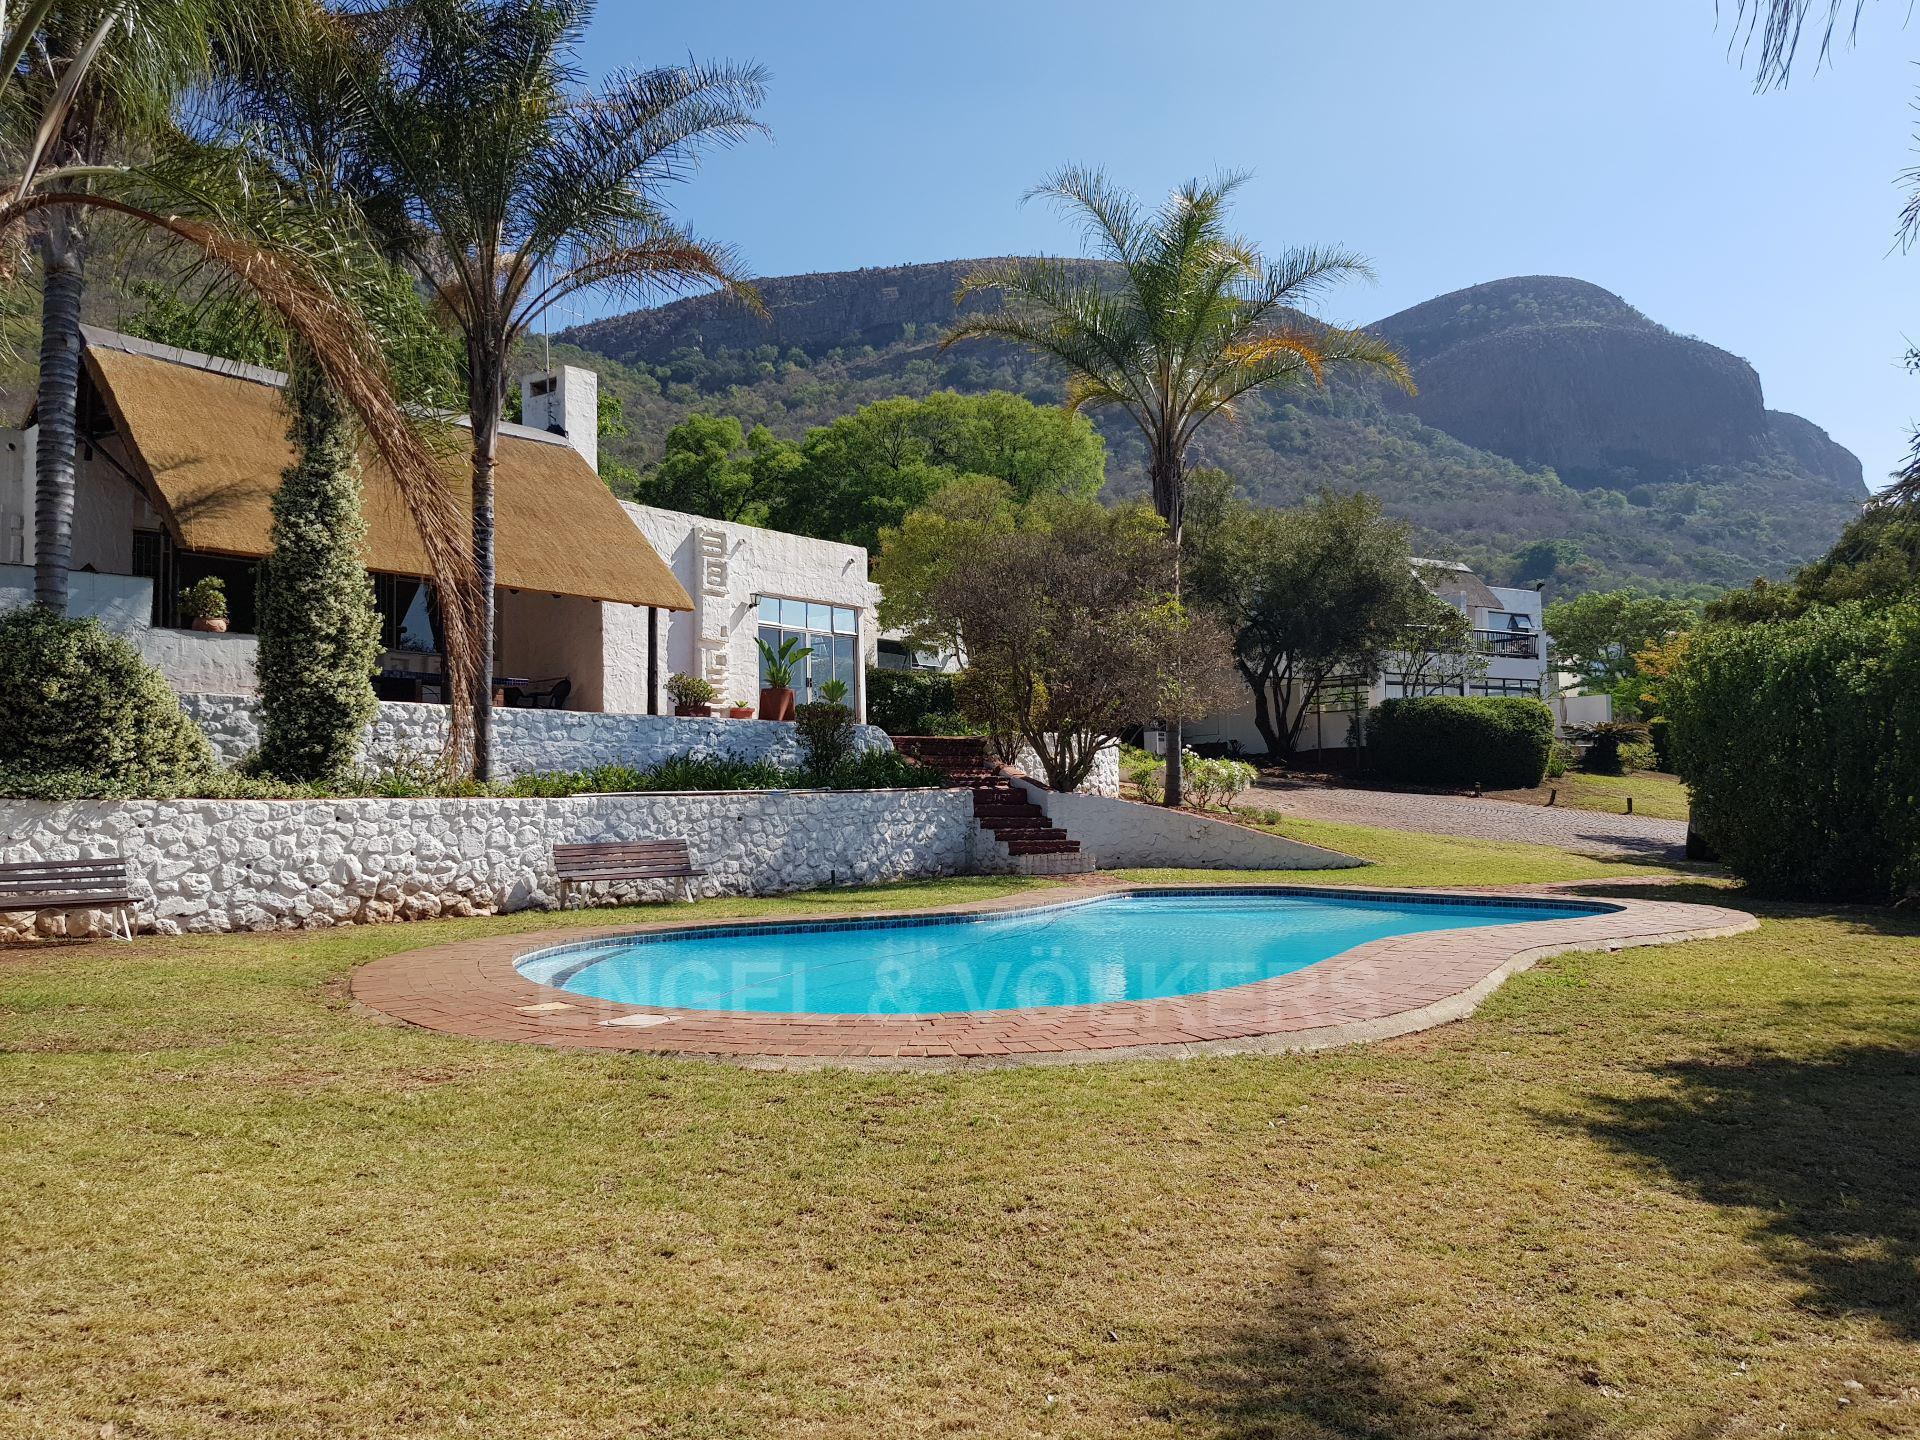 House in Mount Kos - Magaliesberg in the background